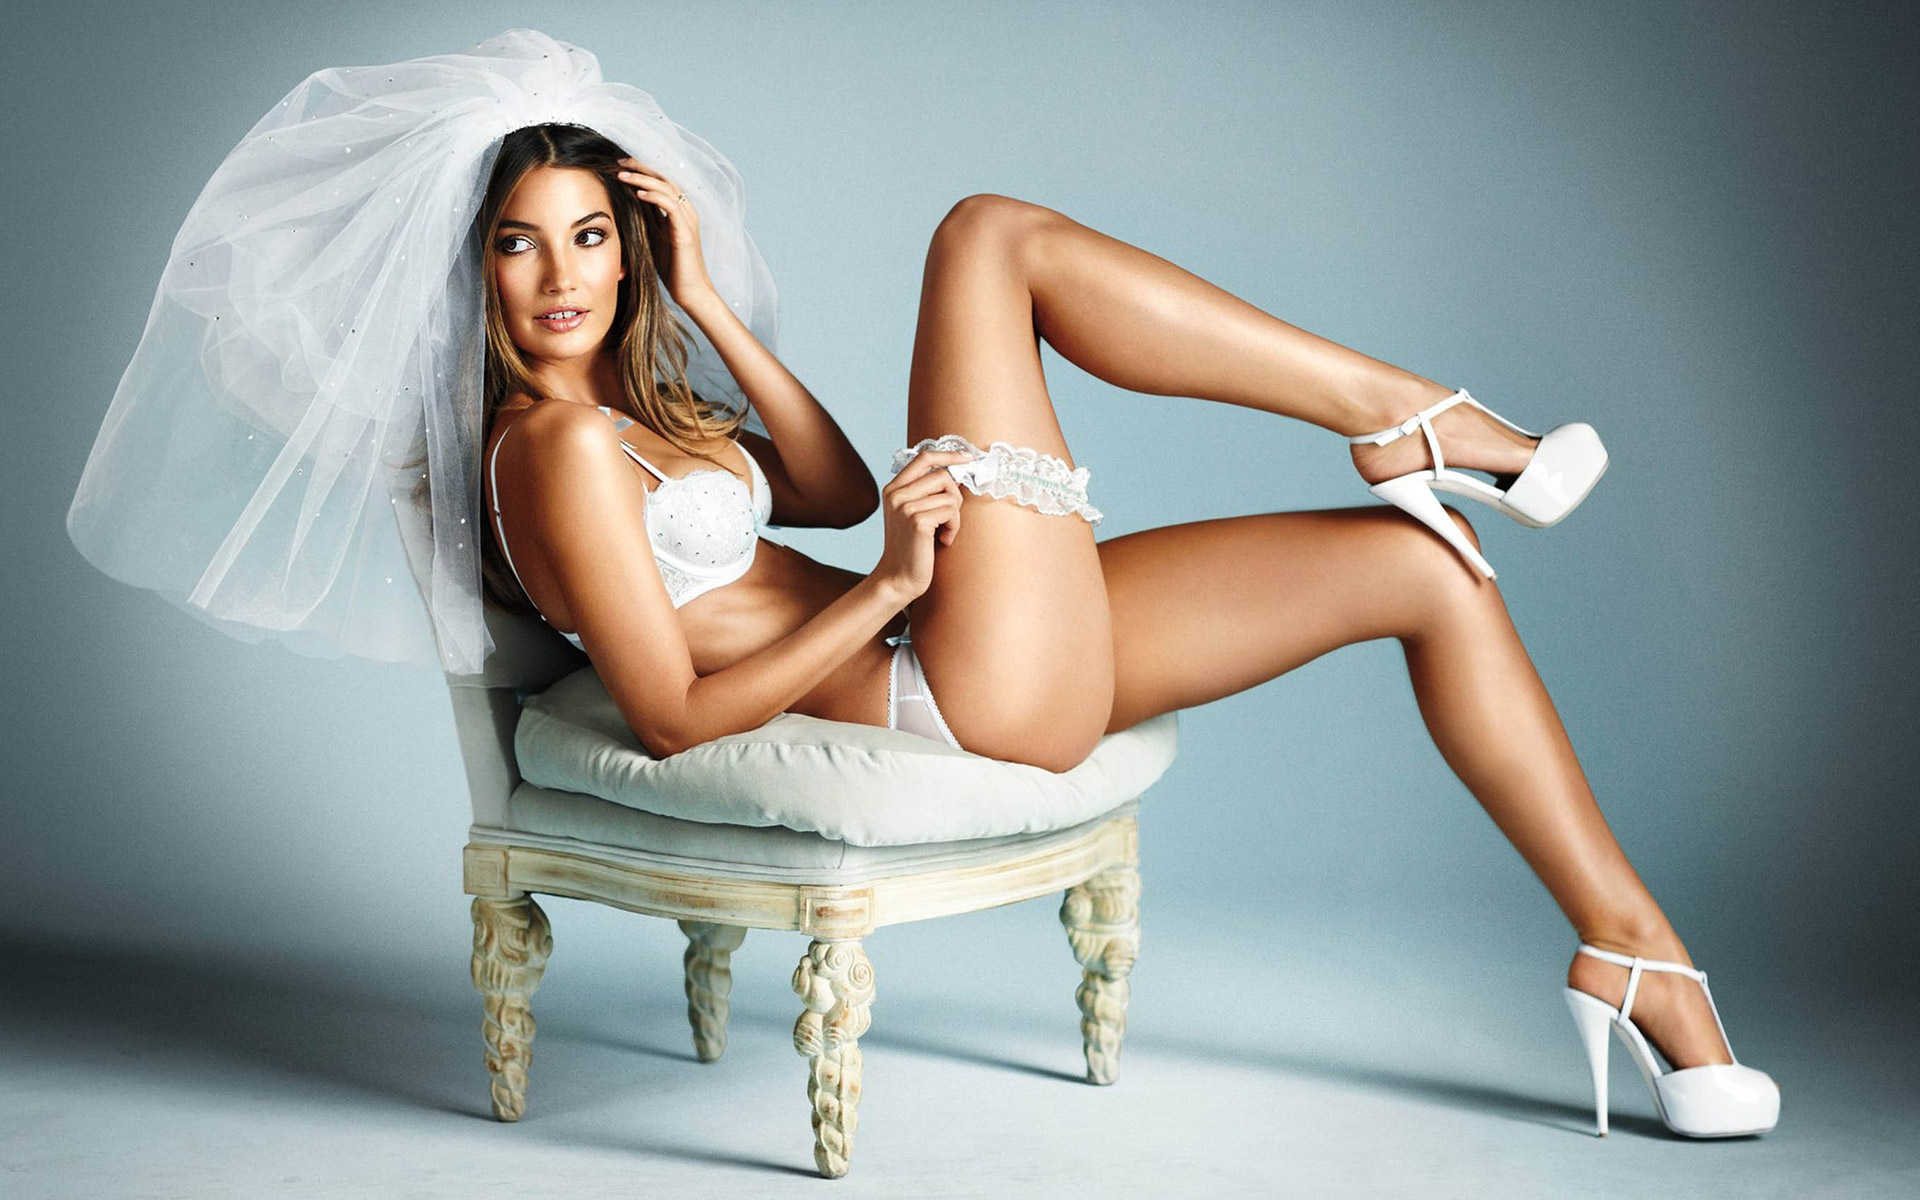 Sexy nude bridal lingerie not